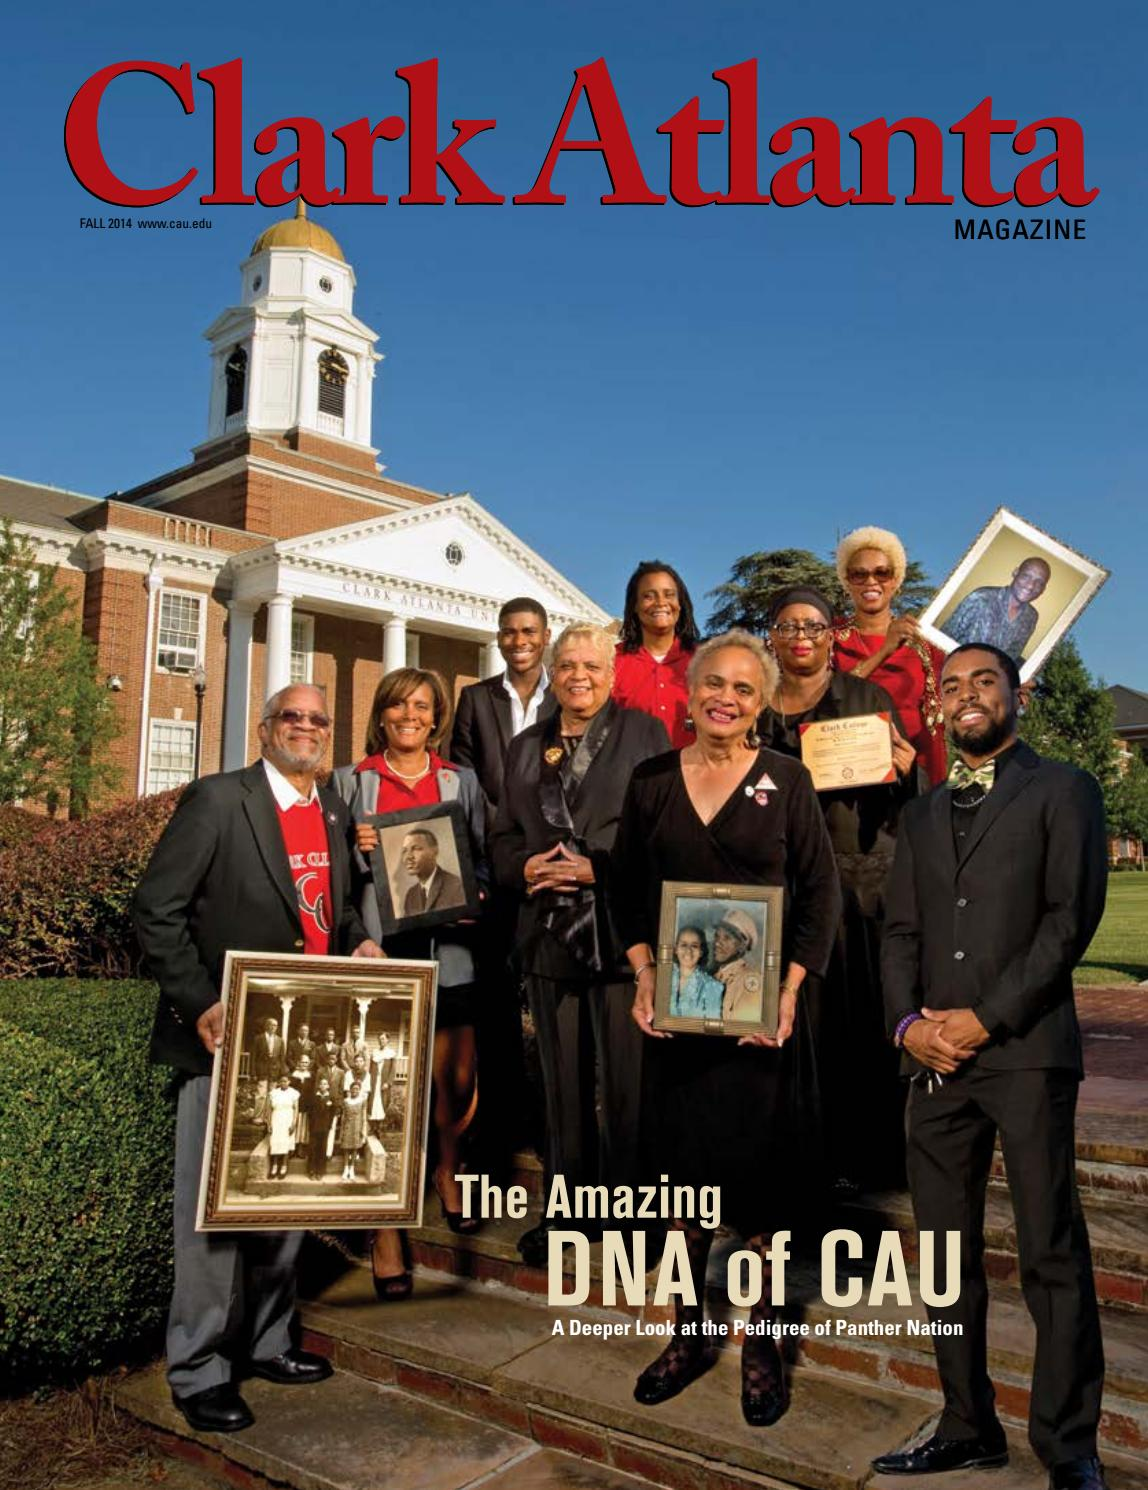 Clark Atlanta University Majors >> Clark Atlanta University Magazine Fall 2014 By Clark Atlanta